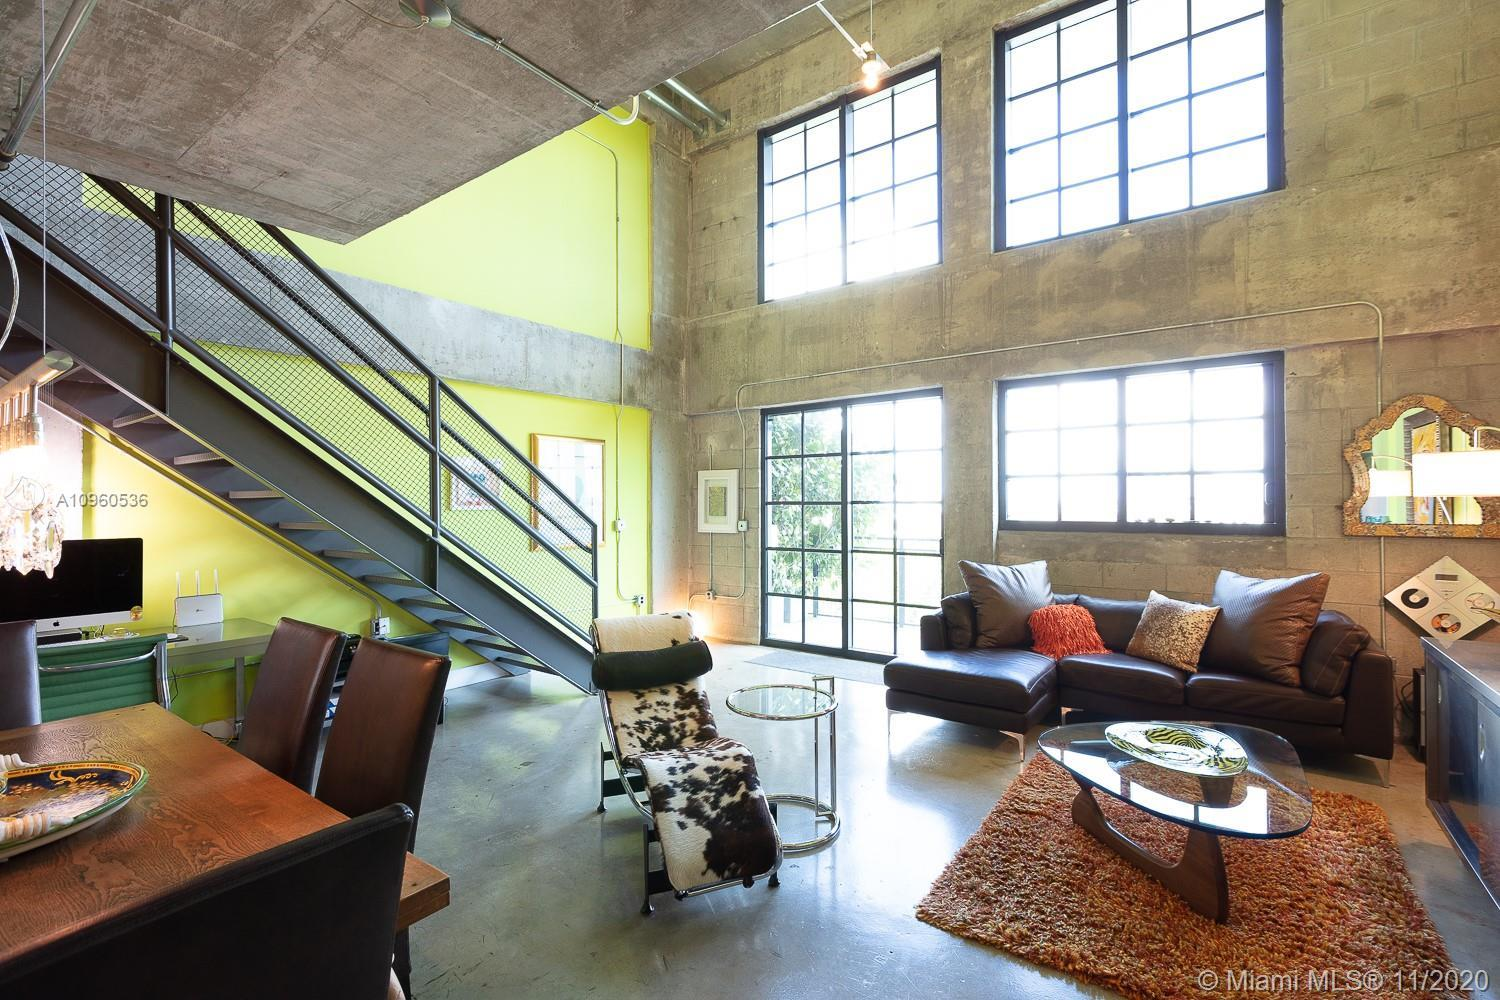 New York Style Industrial Loft with over $150K spent in upgrades, for storage fixture and finishes i